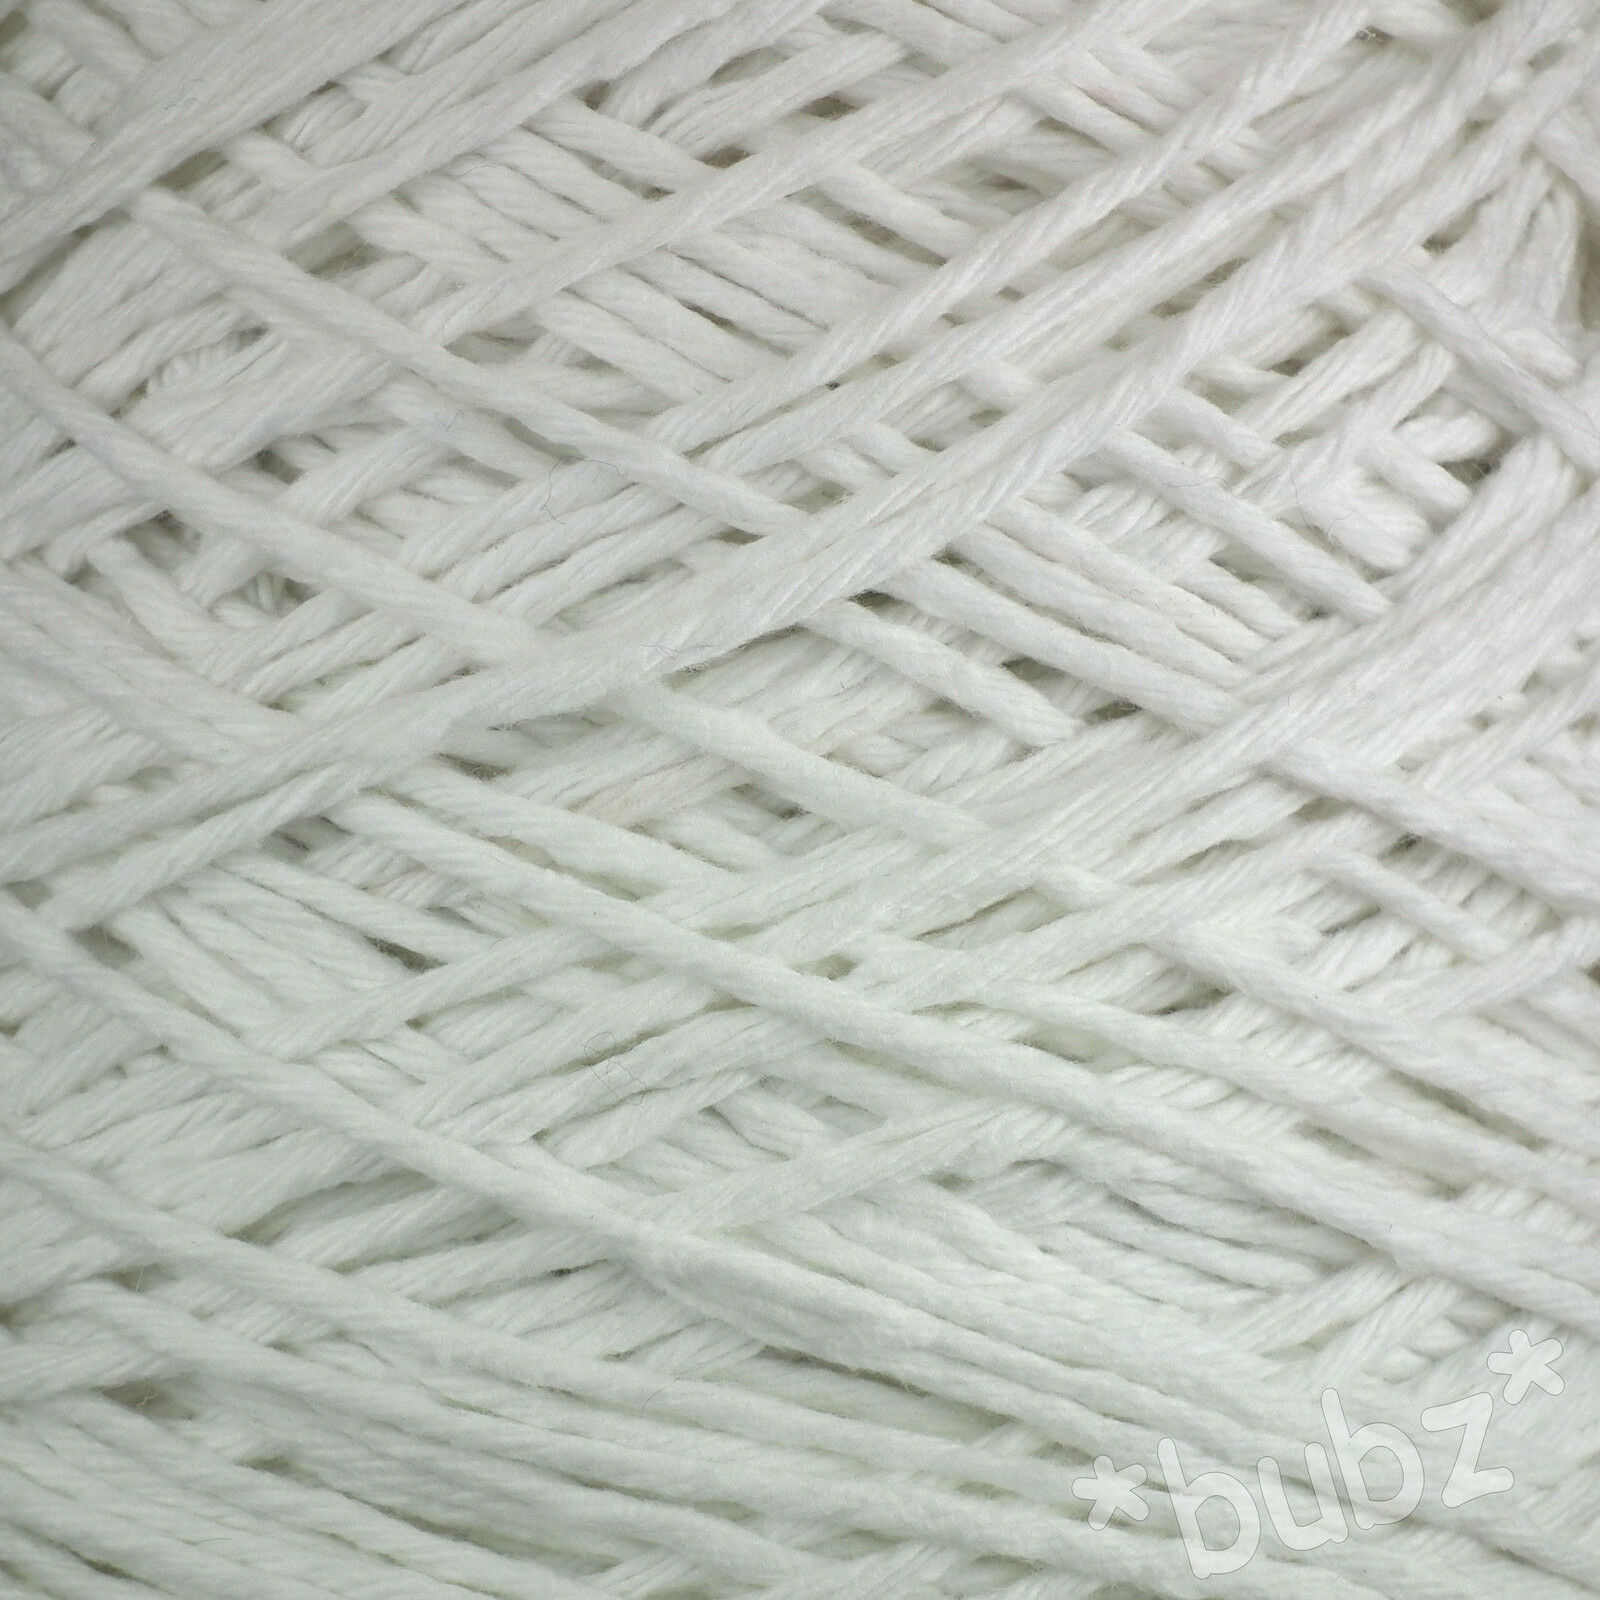 Chunky Super Soft Optic White Pure Cotton Yarn 500g Cone 10 Ball ...